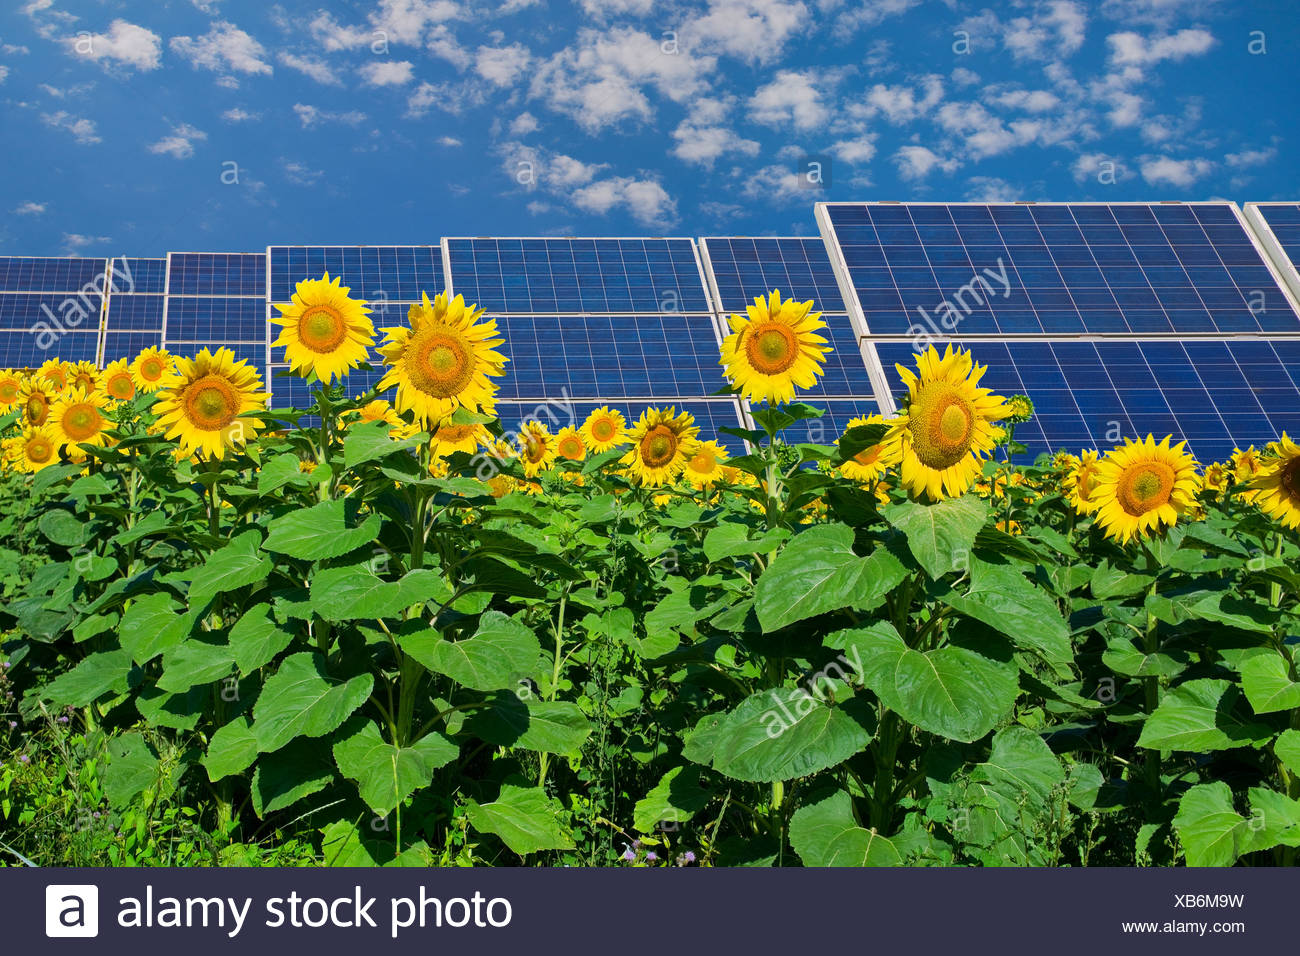 Solar panels in field of sunflowers - Stock Image